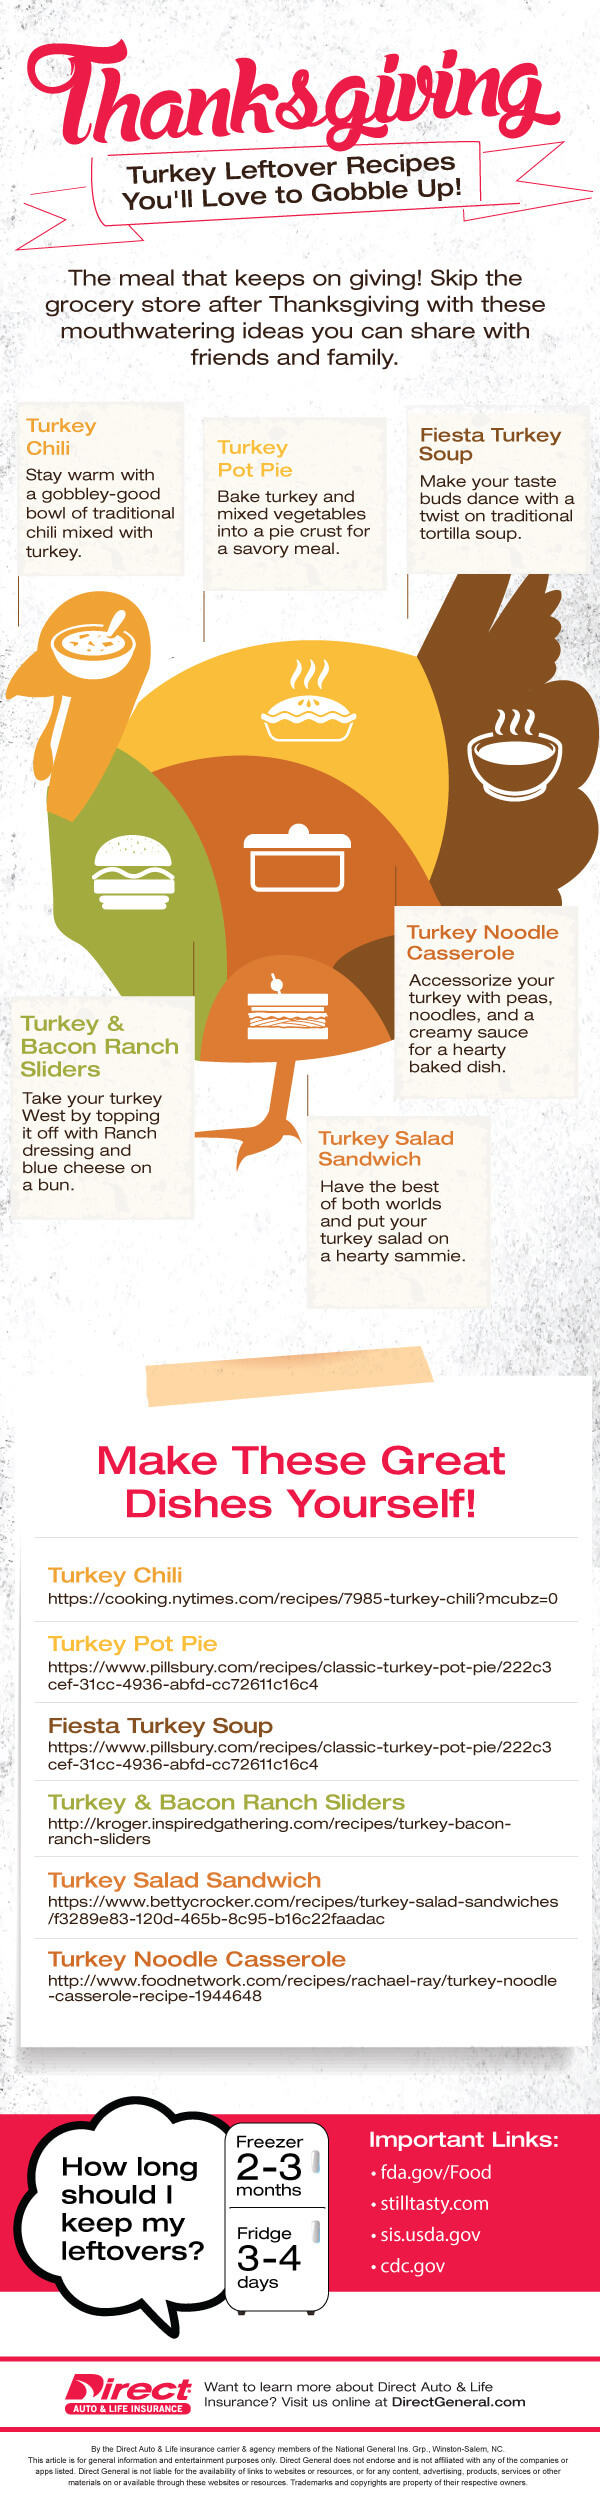 thanksgiving-infographic-turkey-leftover-recipes